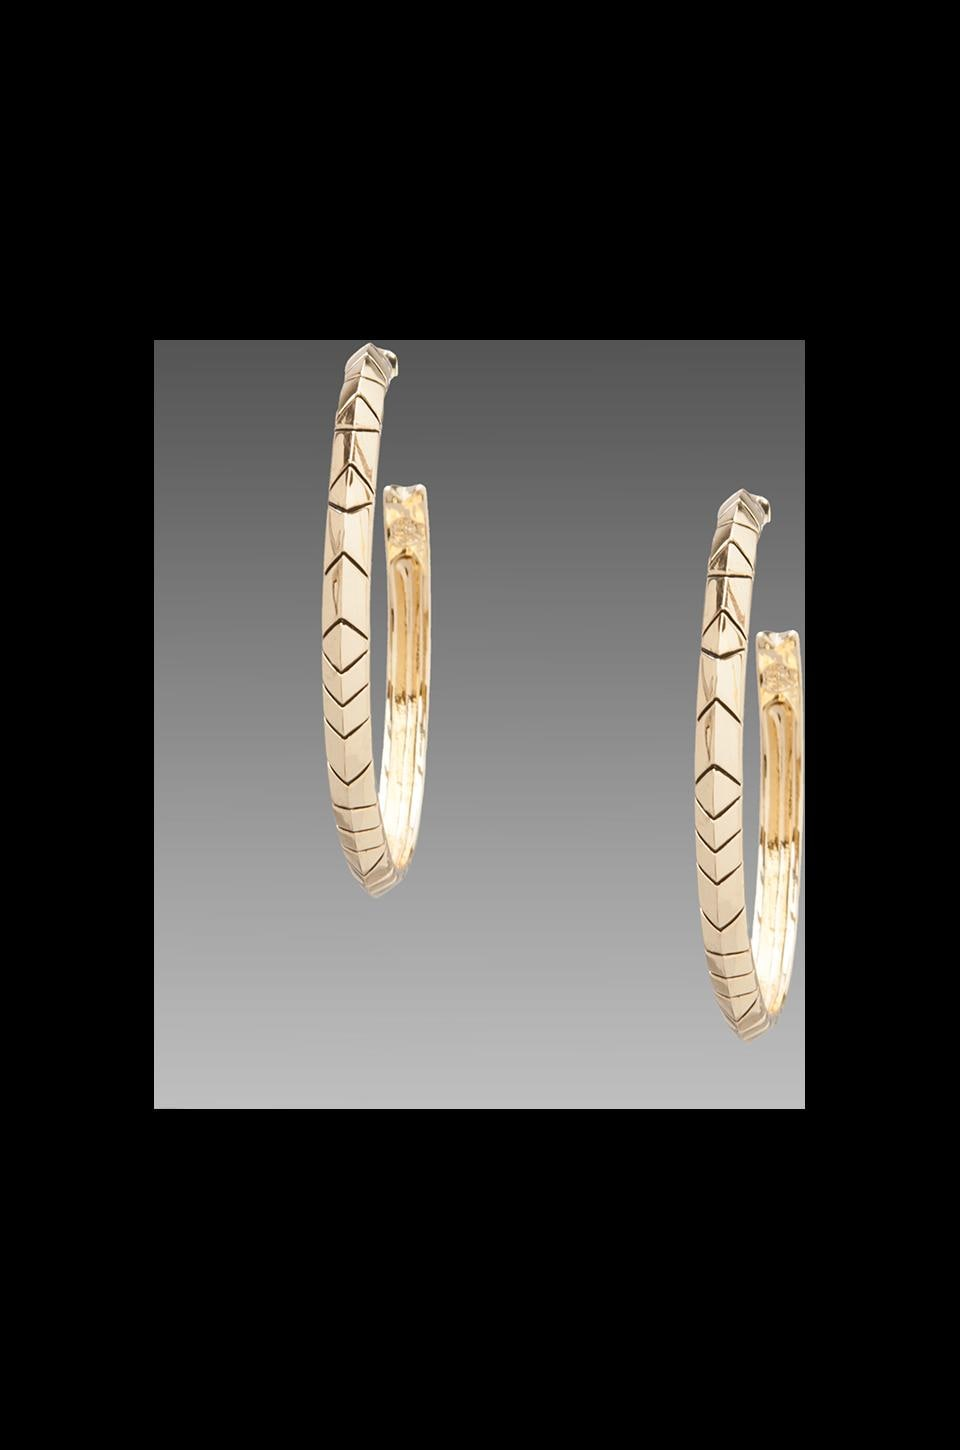 House of Harlow 1960 House of Harlow Tribal Hoop Earrings in Gold